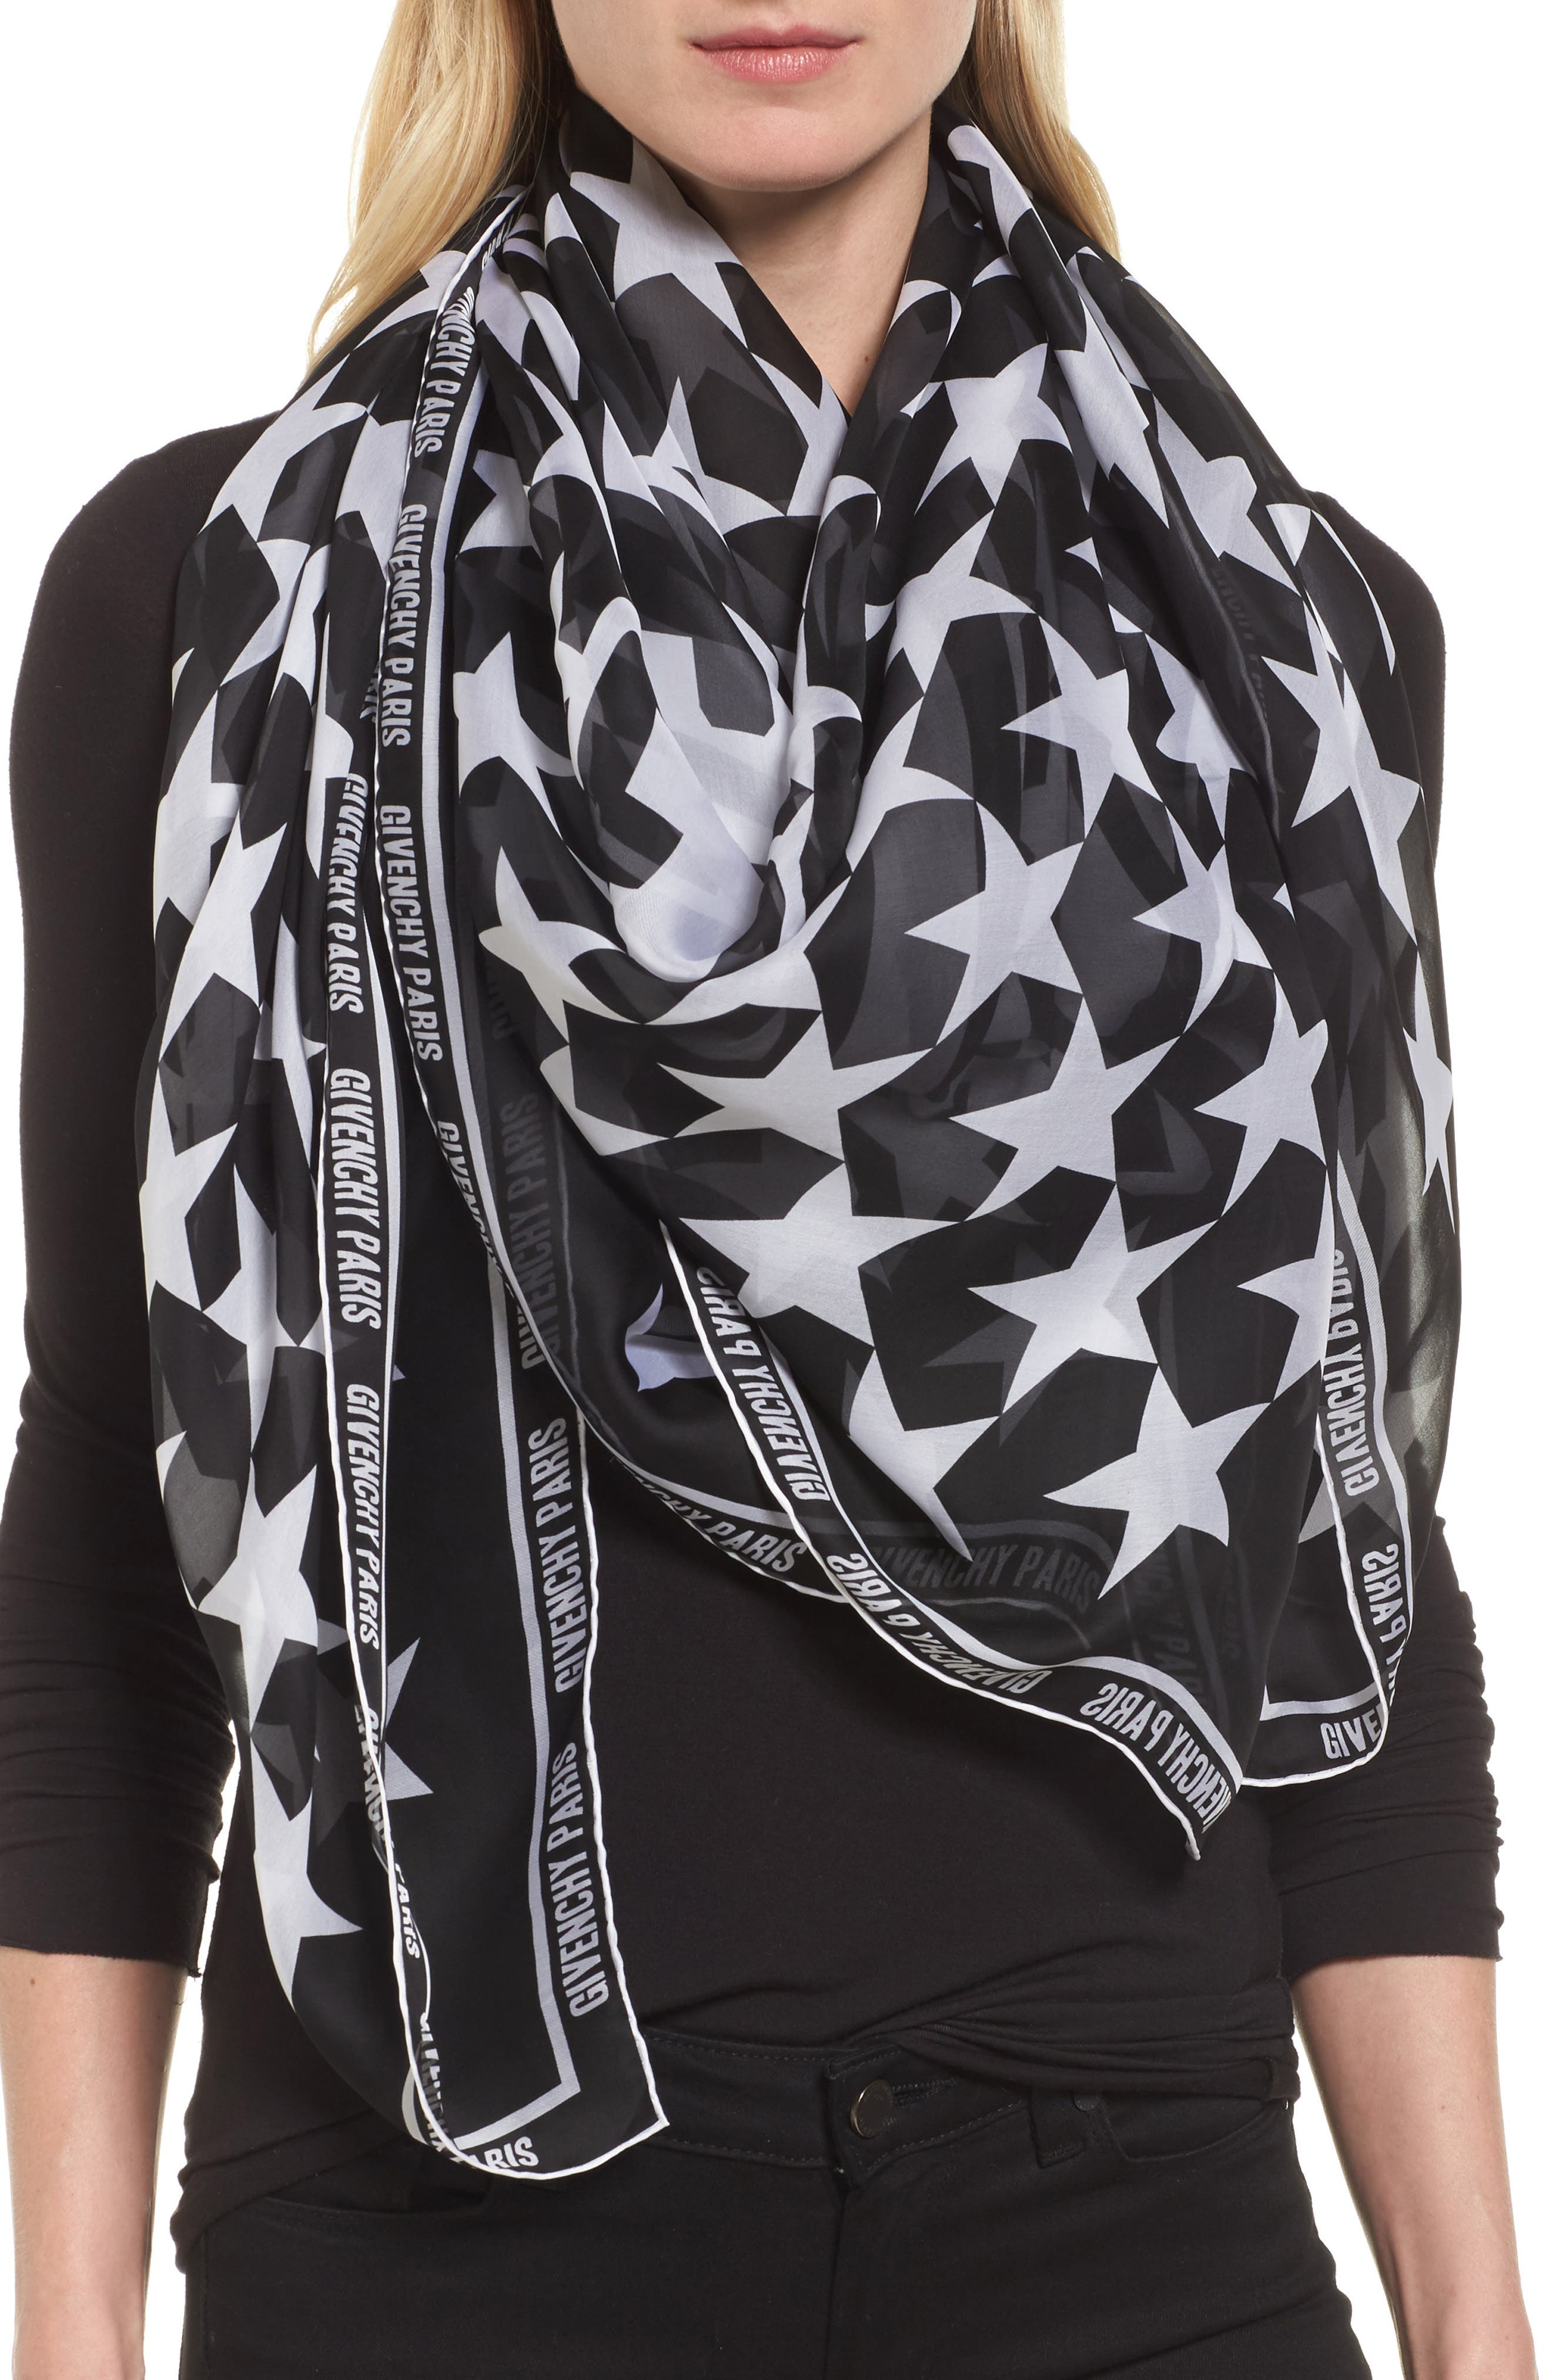 74 Square Silk Scarf,                             Alternate thumbnail 3, color,                             Black/ White